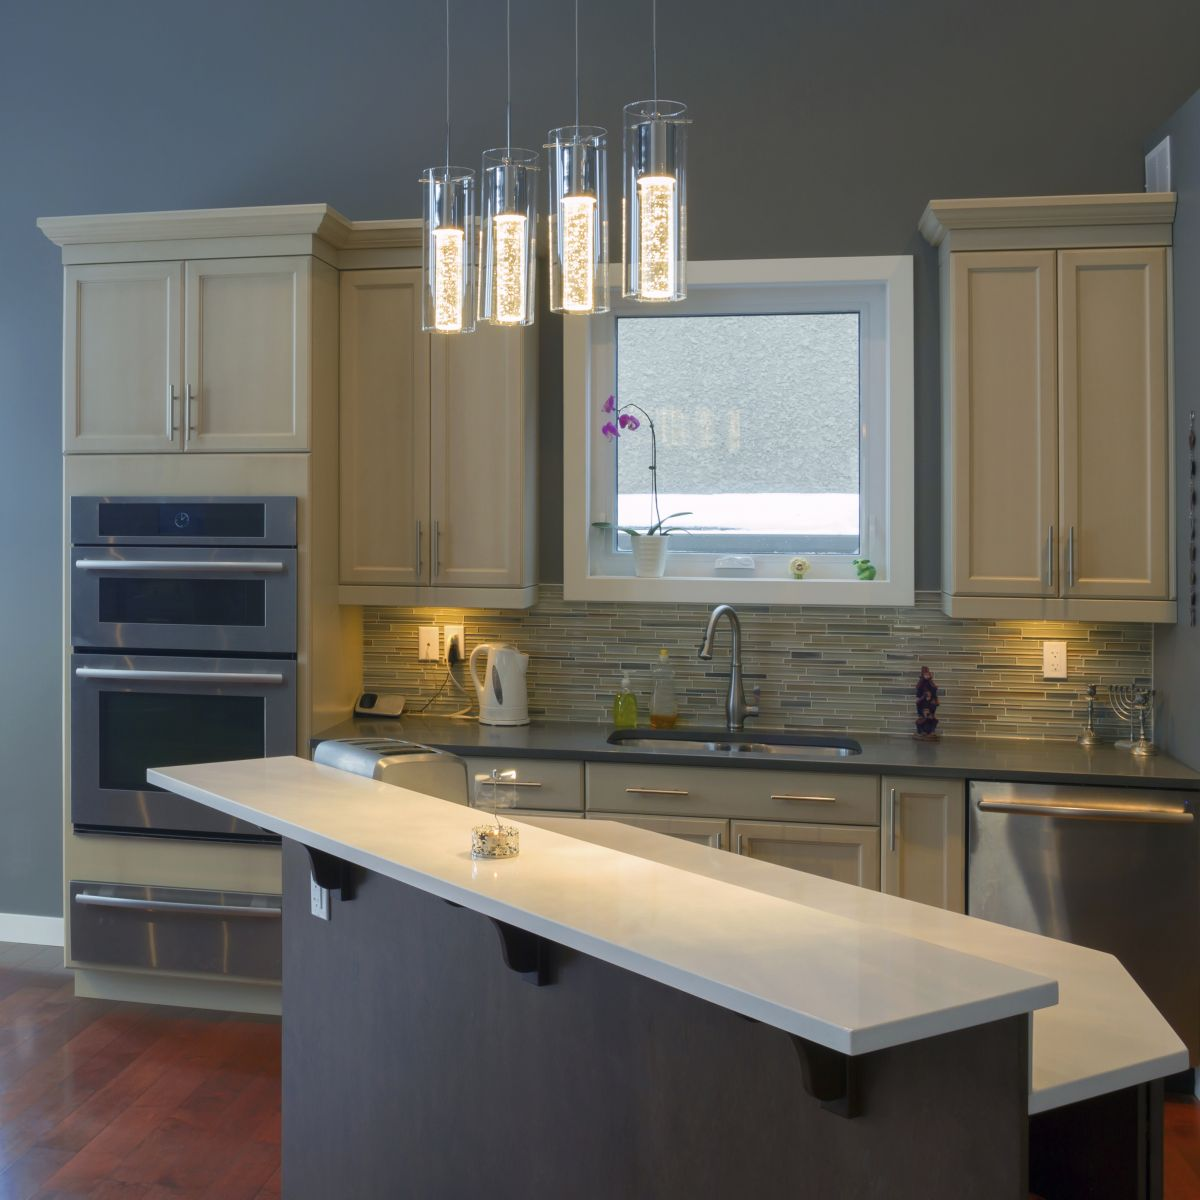 Cost To Reface Cabinets: How Much Does Kitchen Cabinet Refacing Cost?